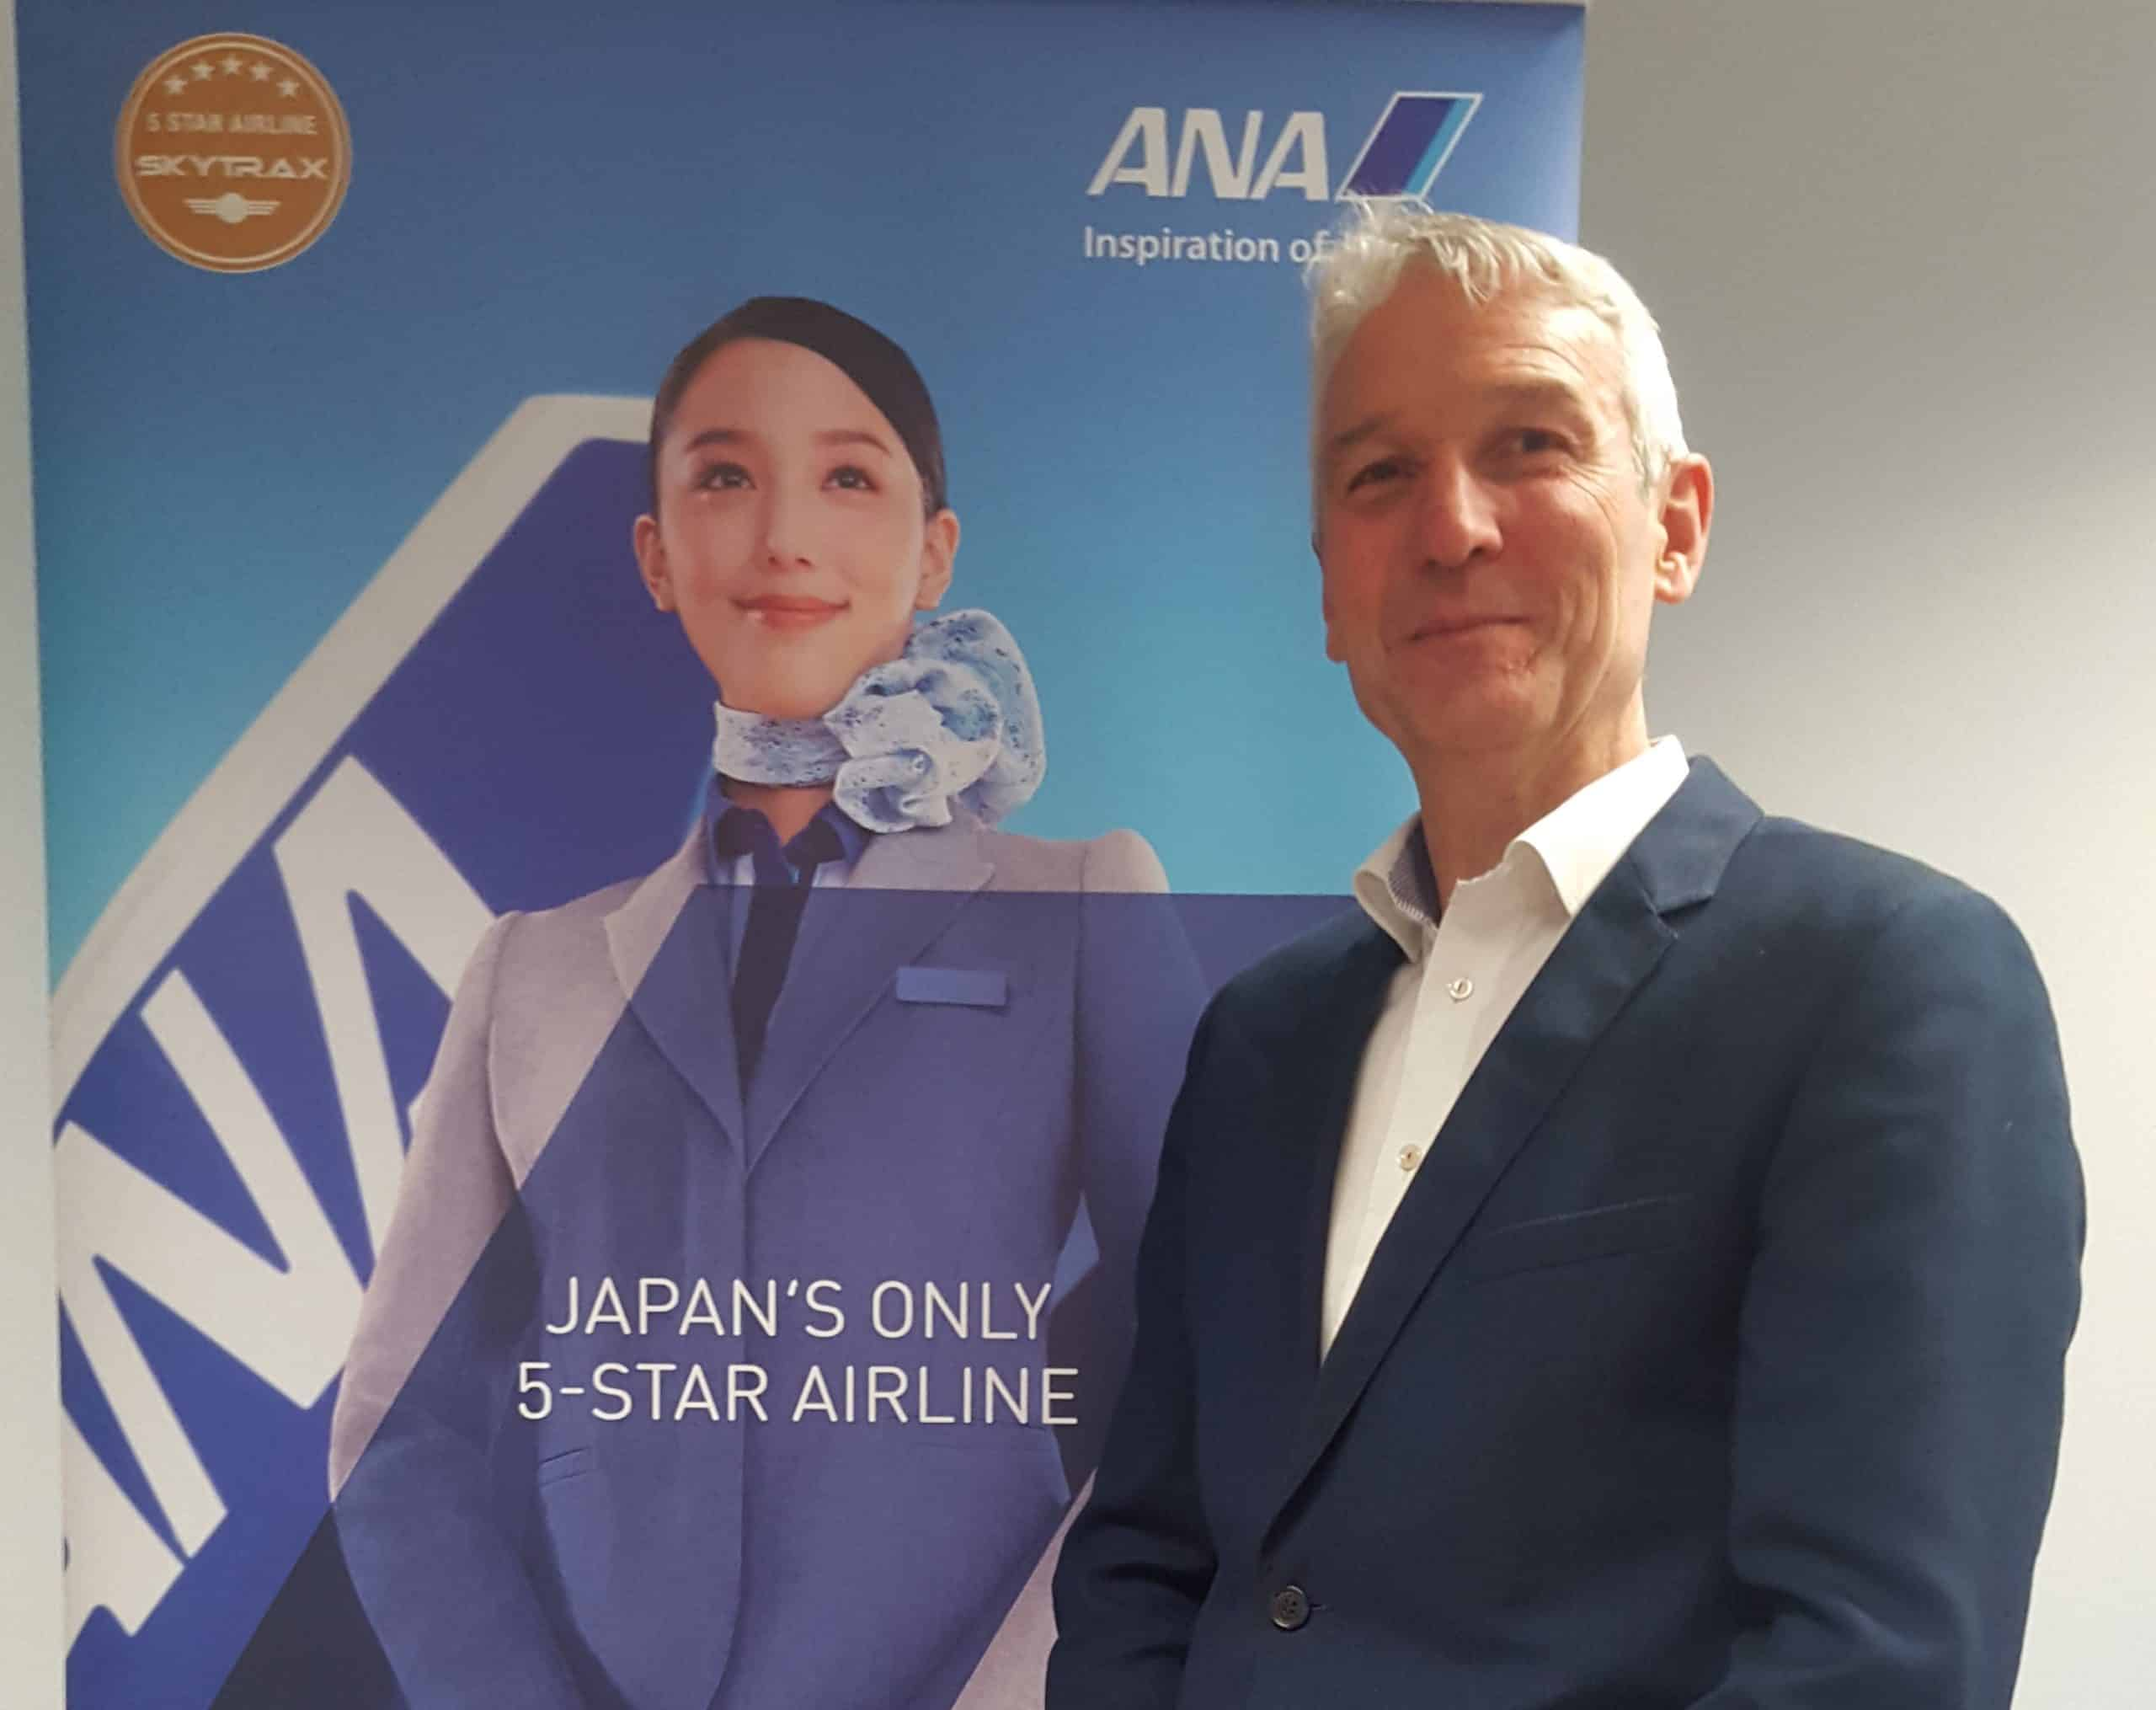 Proud to represent ANA 5-star airline